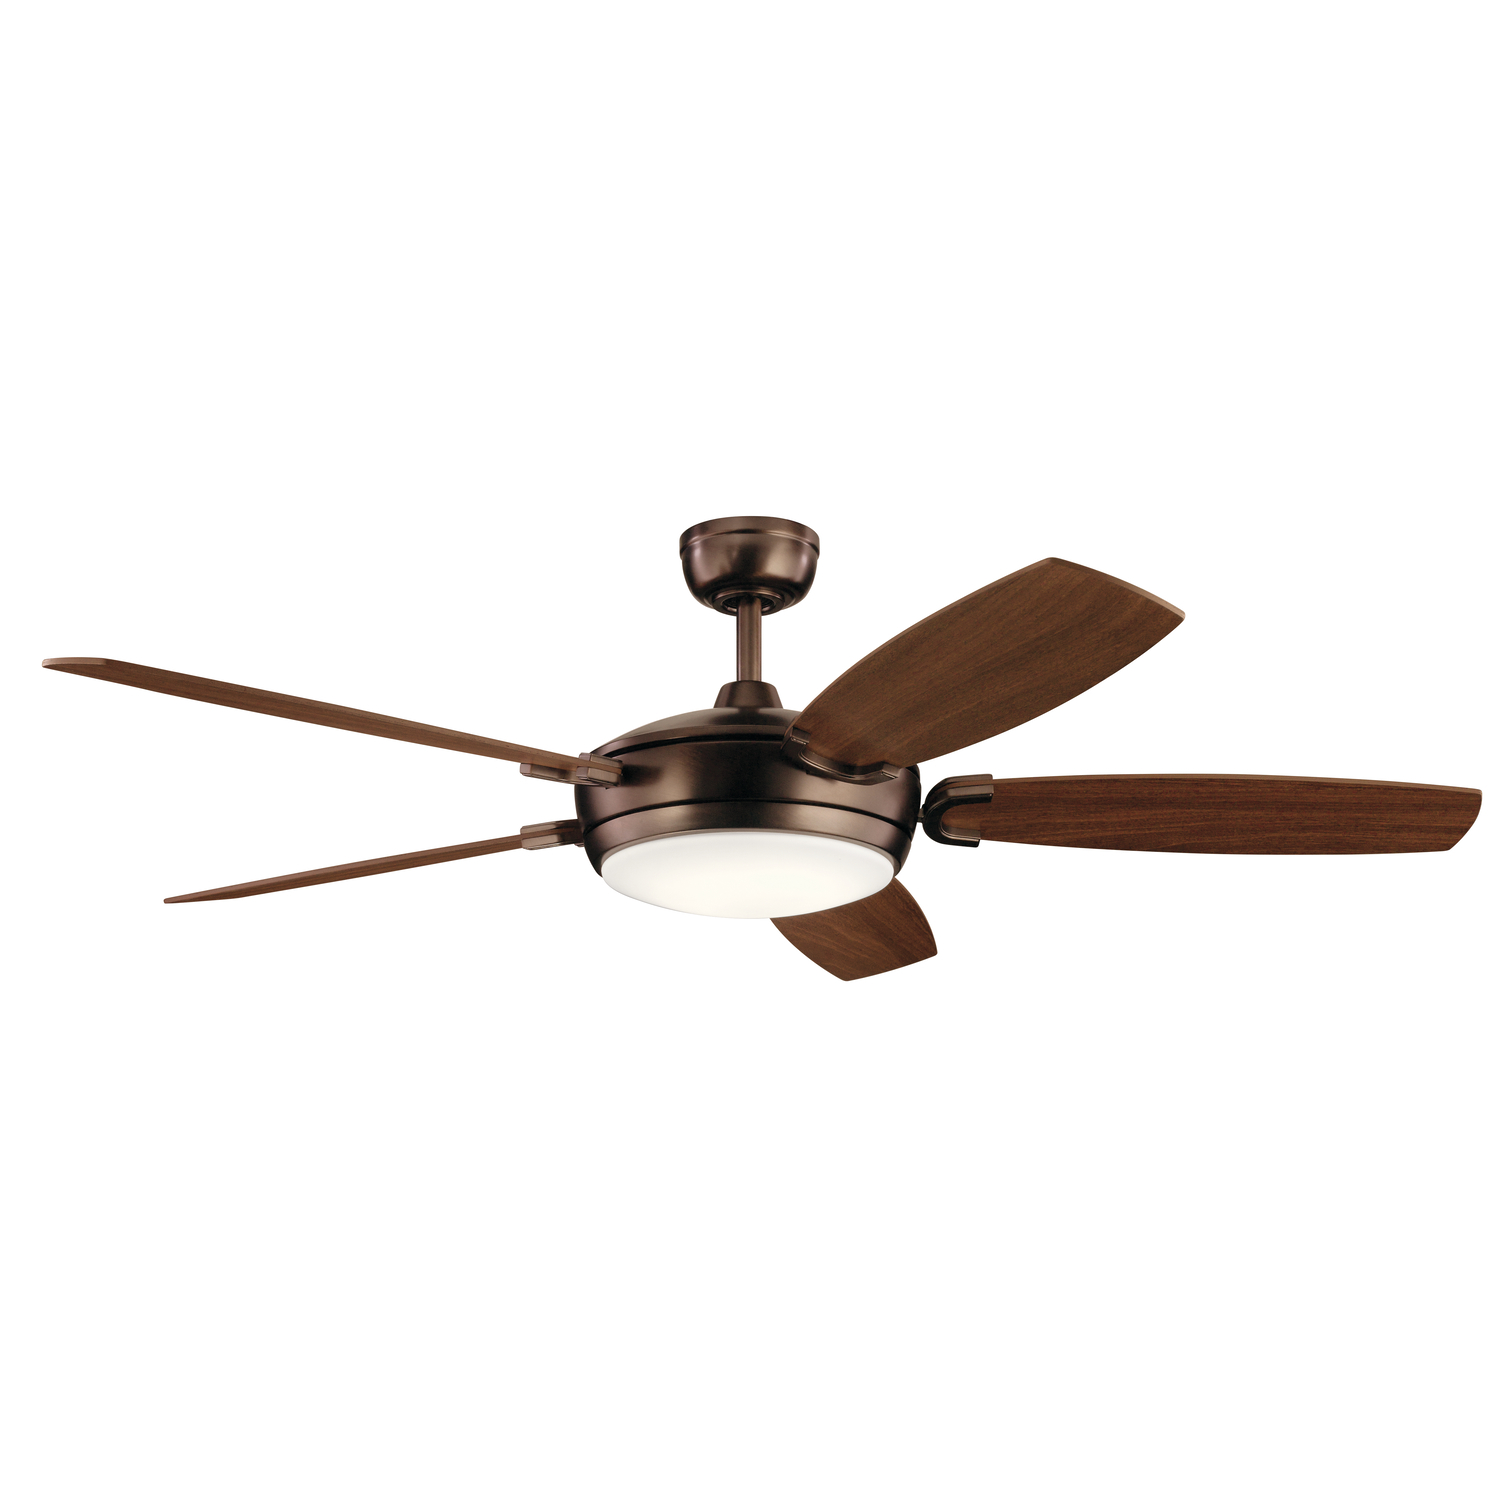 60 inchCeiling Fan from the Trevor collection by Kichler 300256OBB